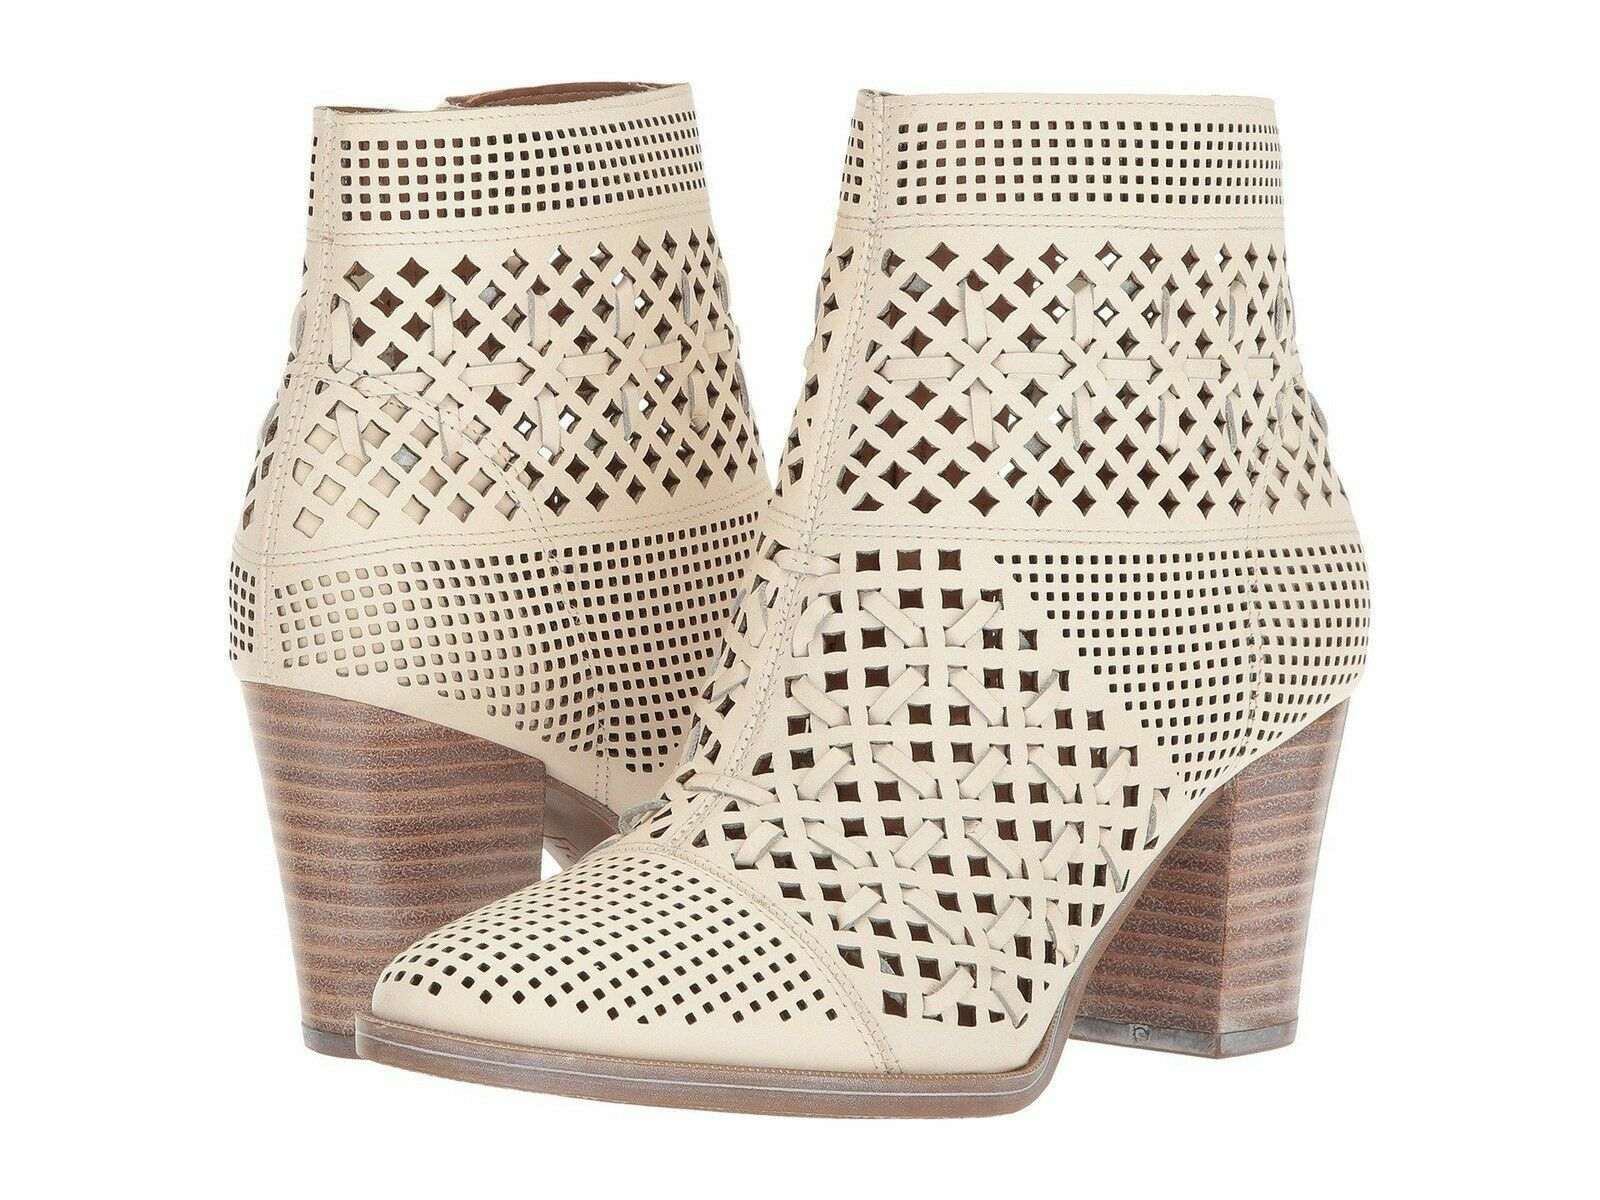 New Sz 7 Franco Sarto DAMSEL Perforated Woven Leather Ankle Boots Ivory Milk